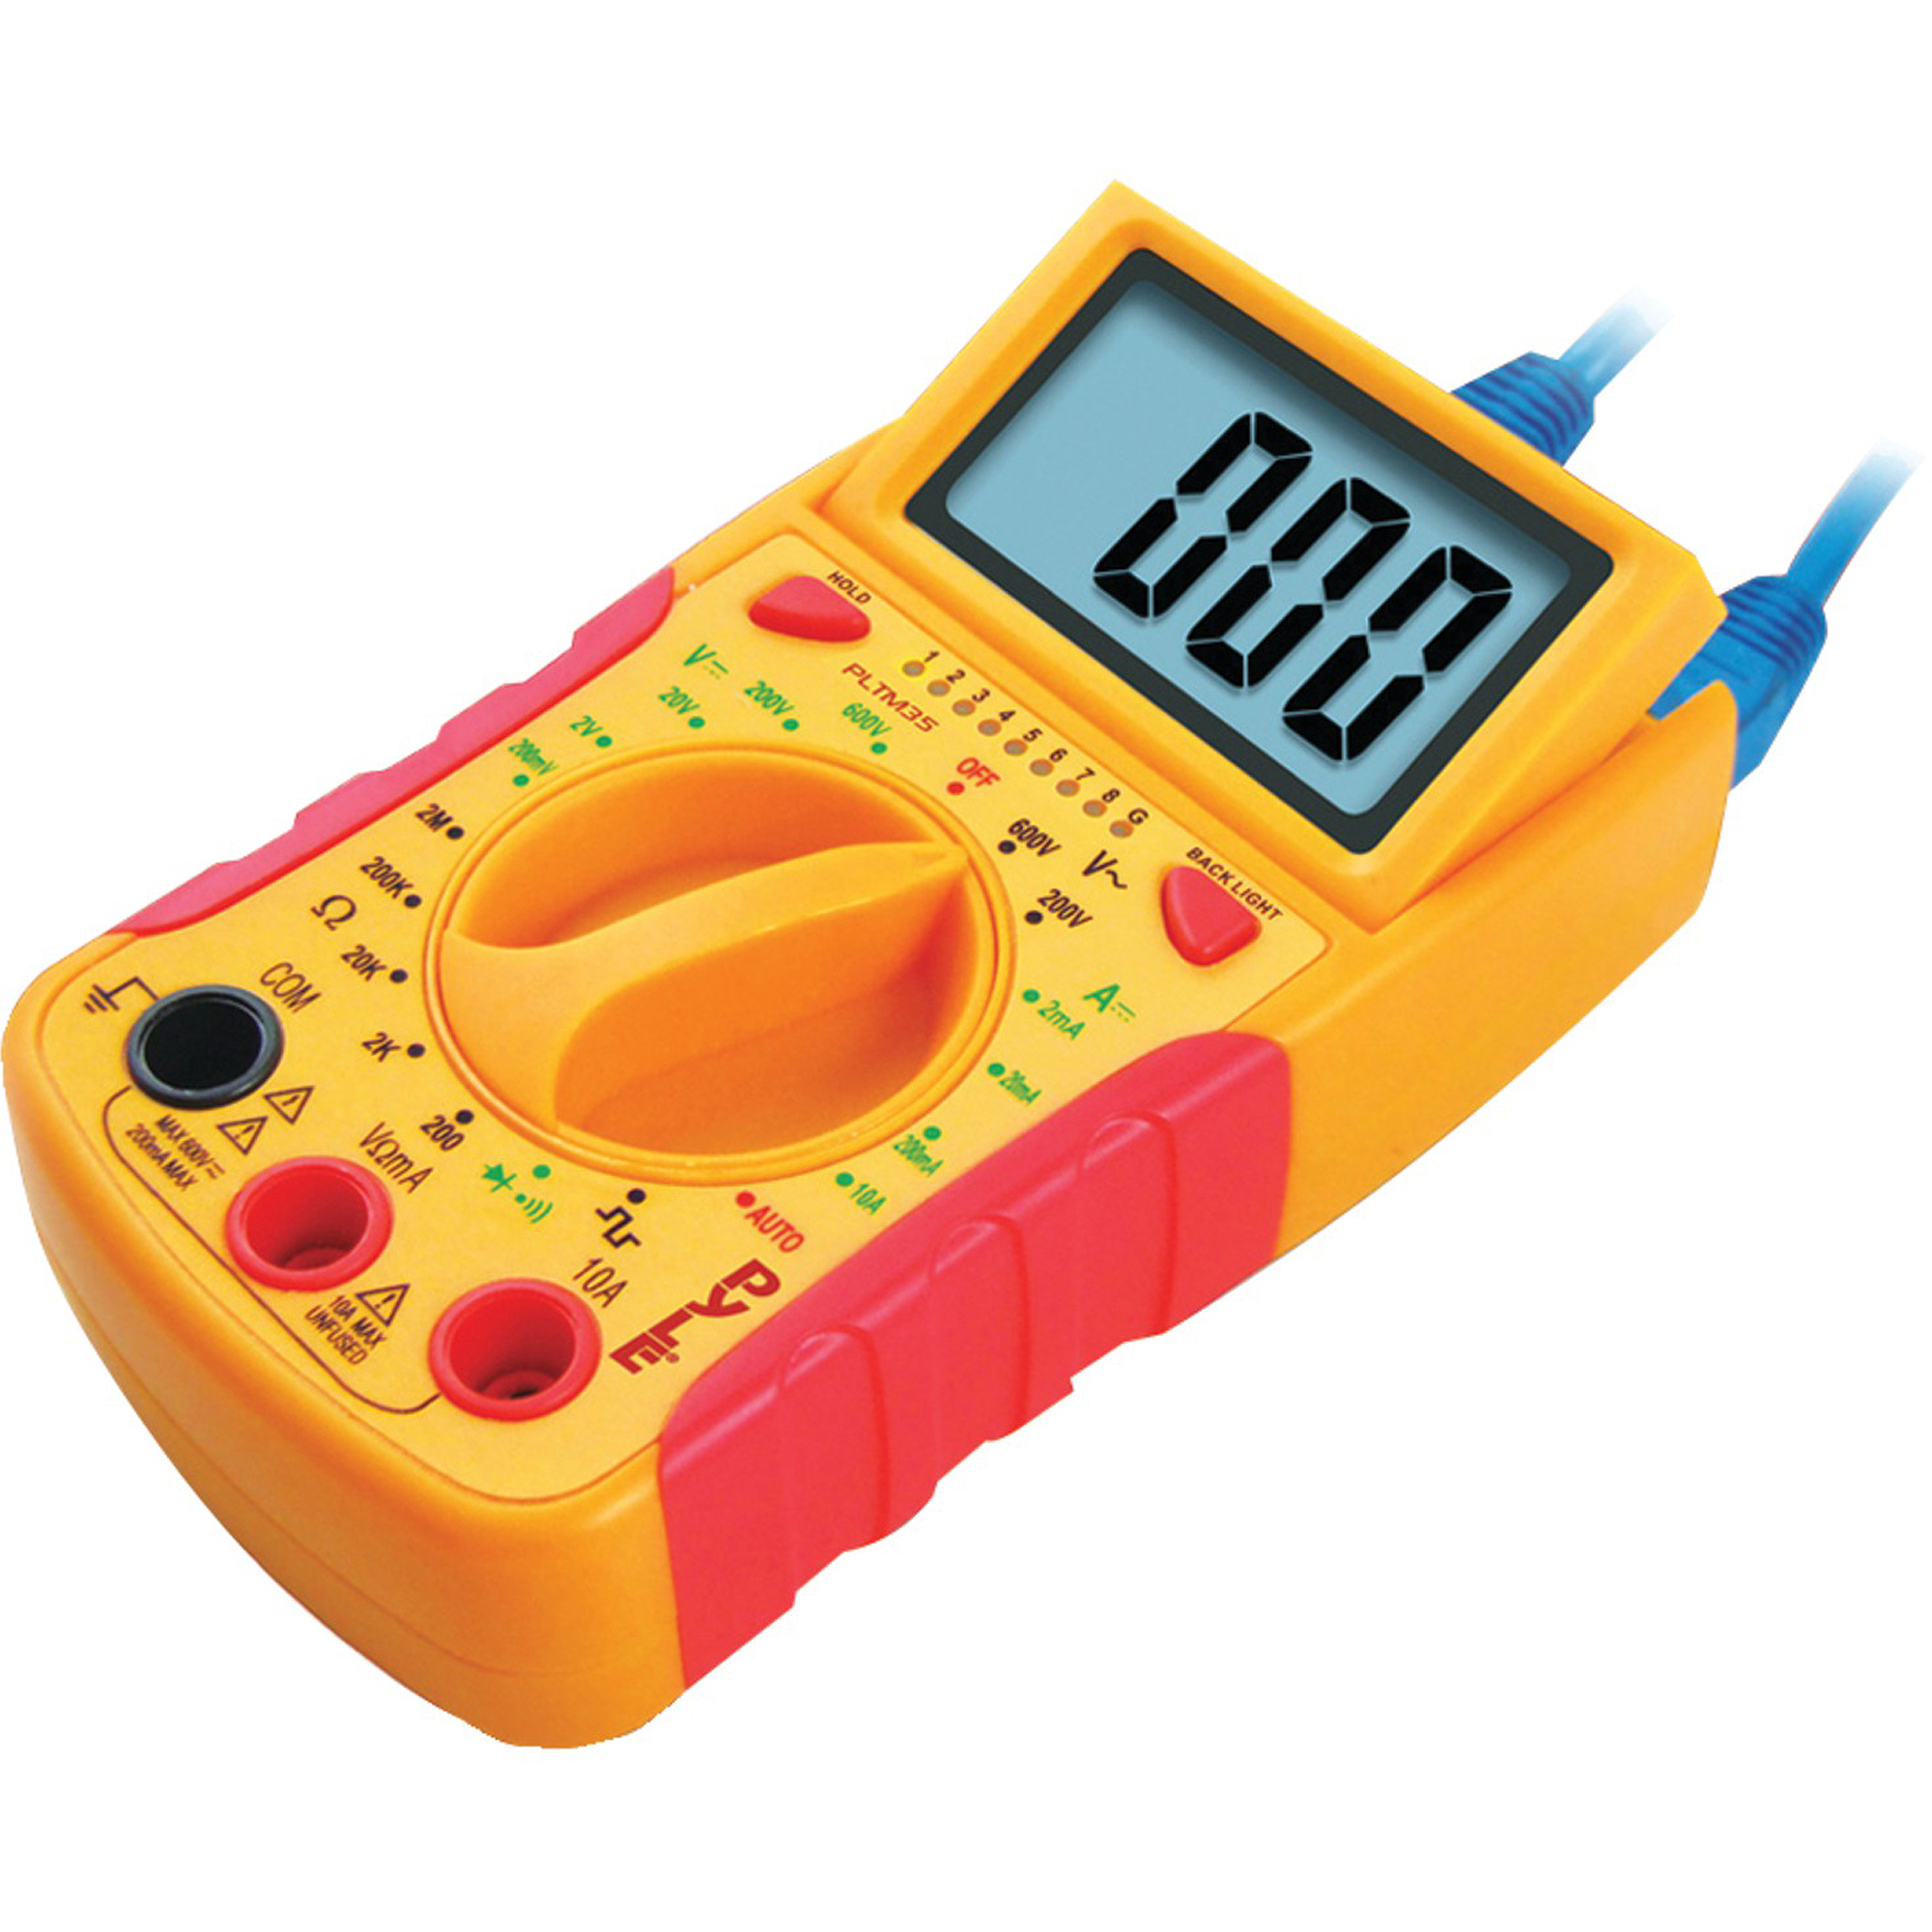 Pyle PLTM35 Mini Digital LCD Multimeter, DC and AC Voltages, DC Current, Resistance and Diode